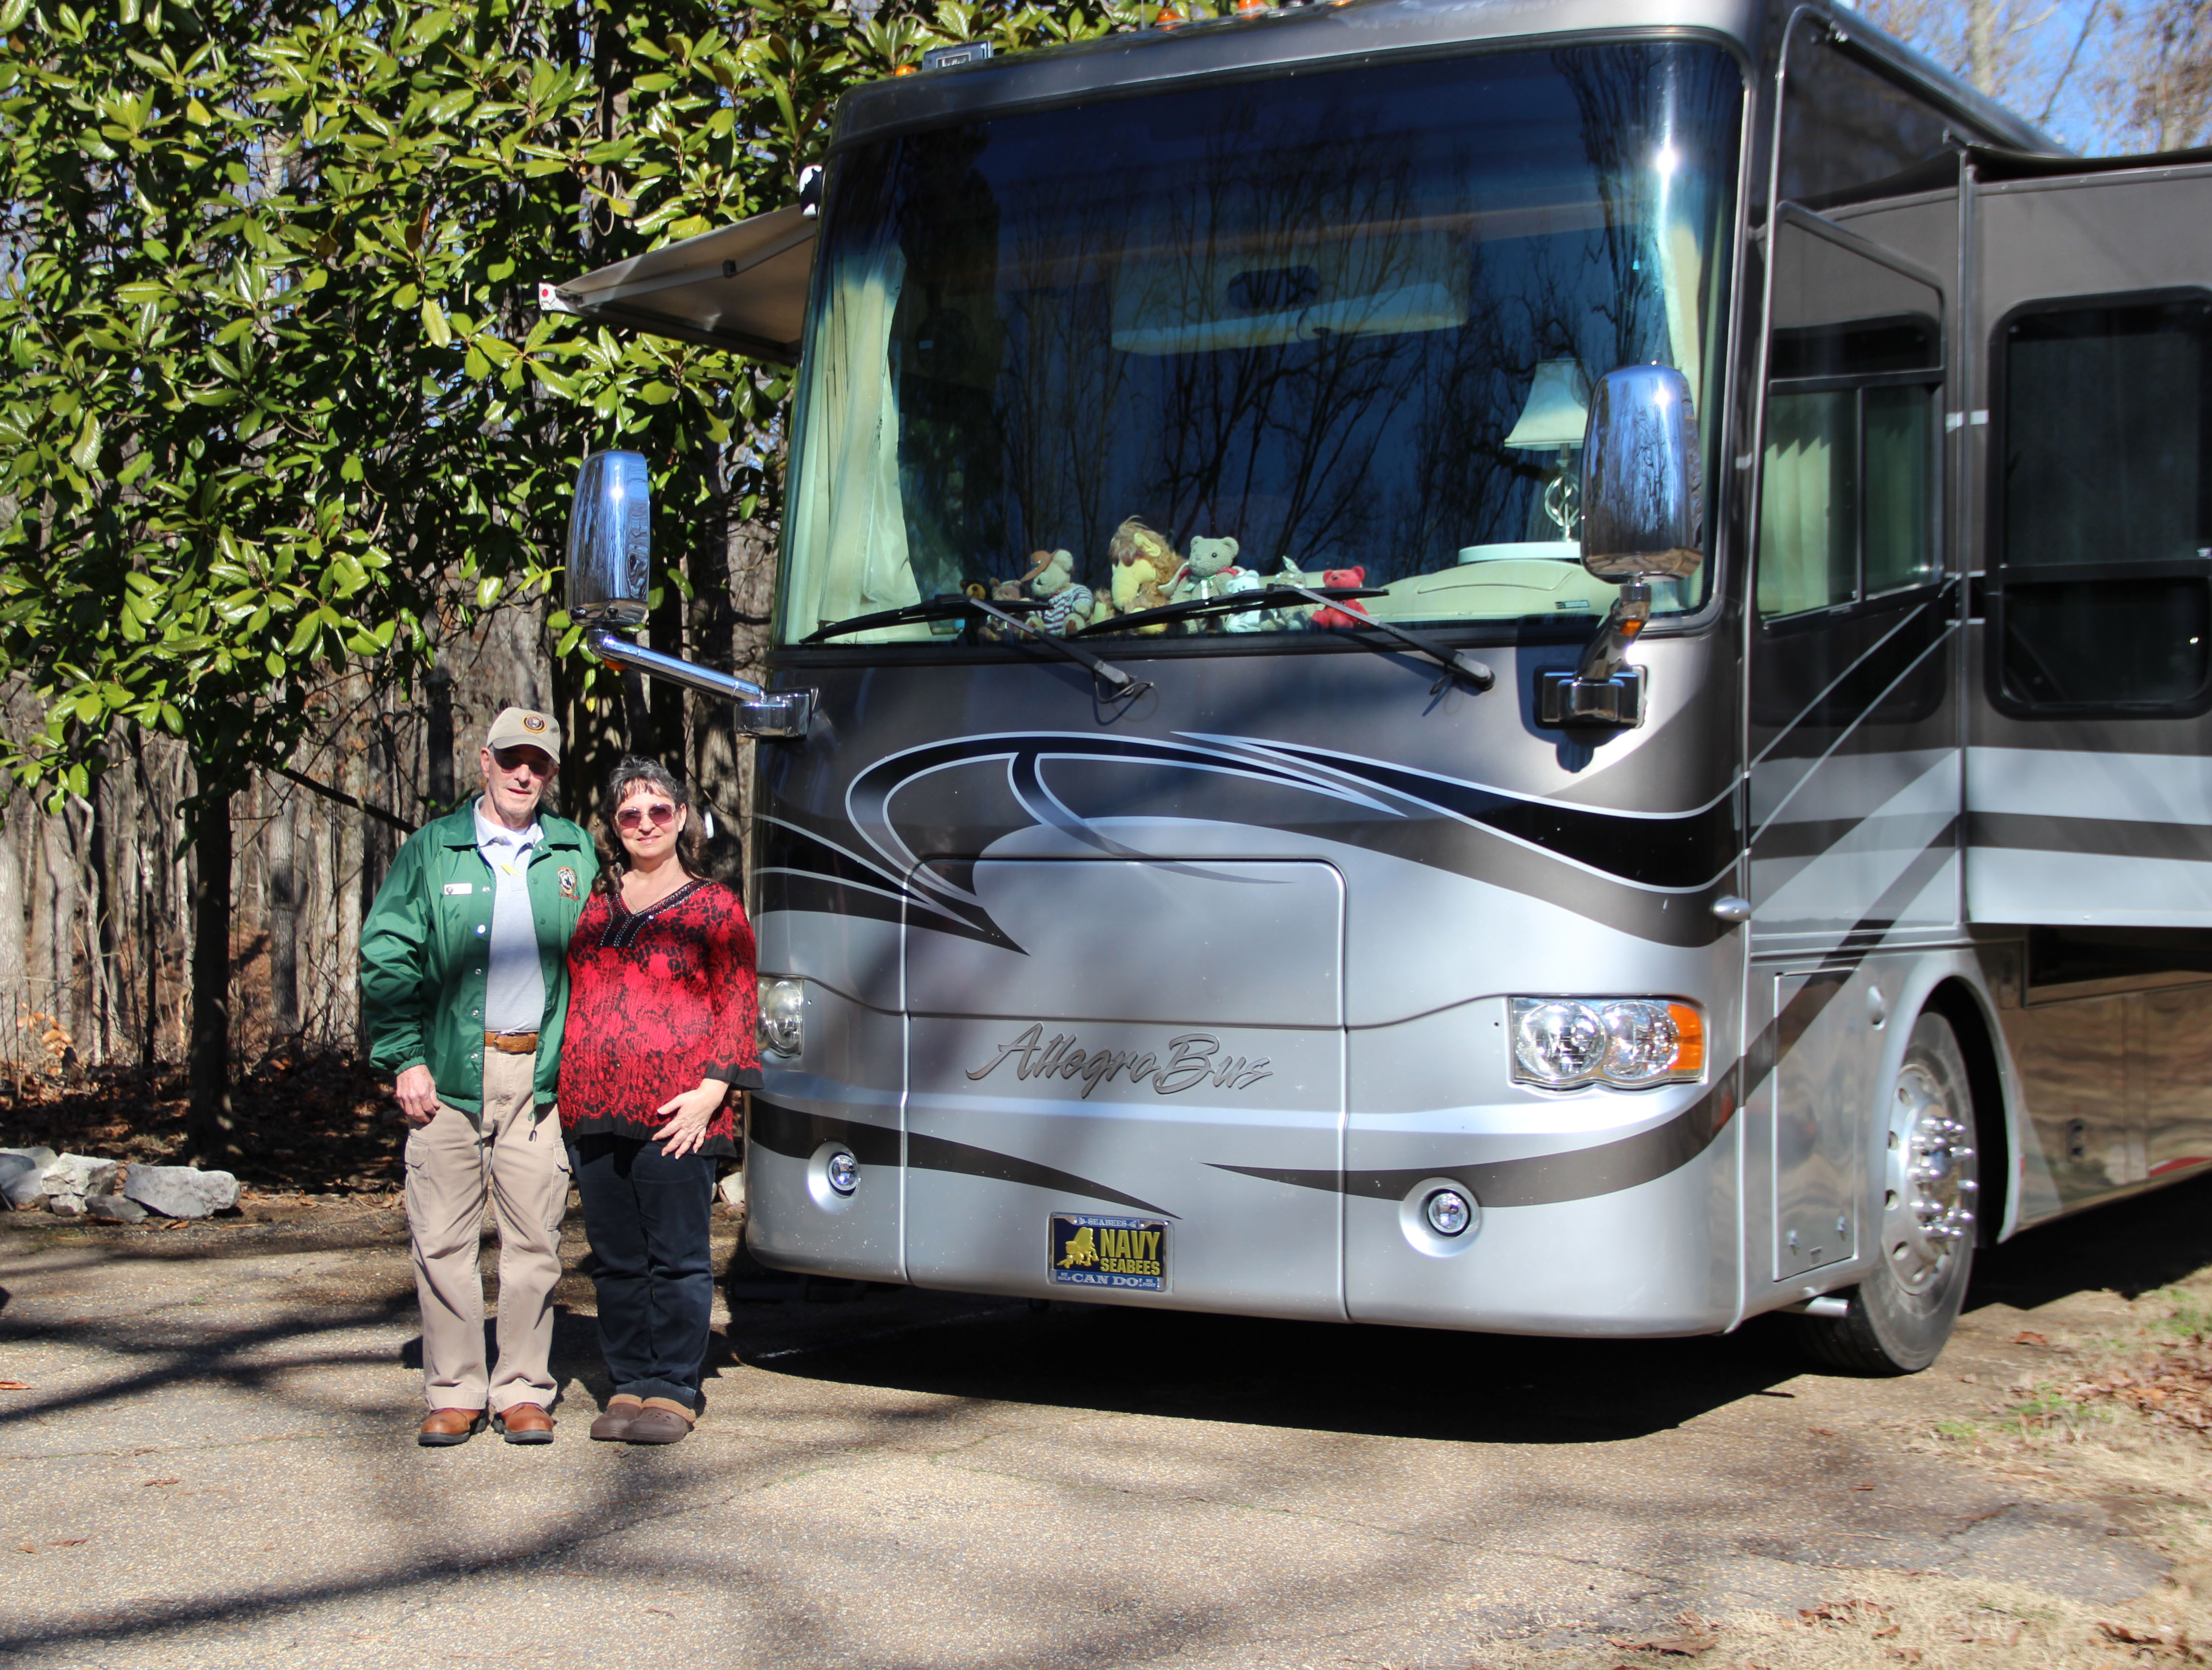 volunteer Denny Sims and his wife Lisa standing in front of a recreational vehicle